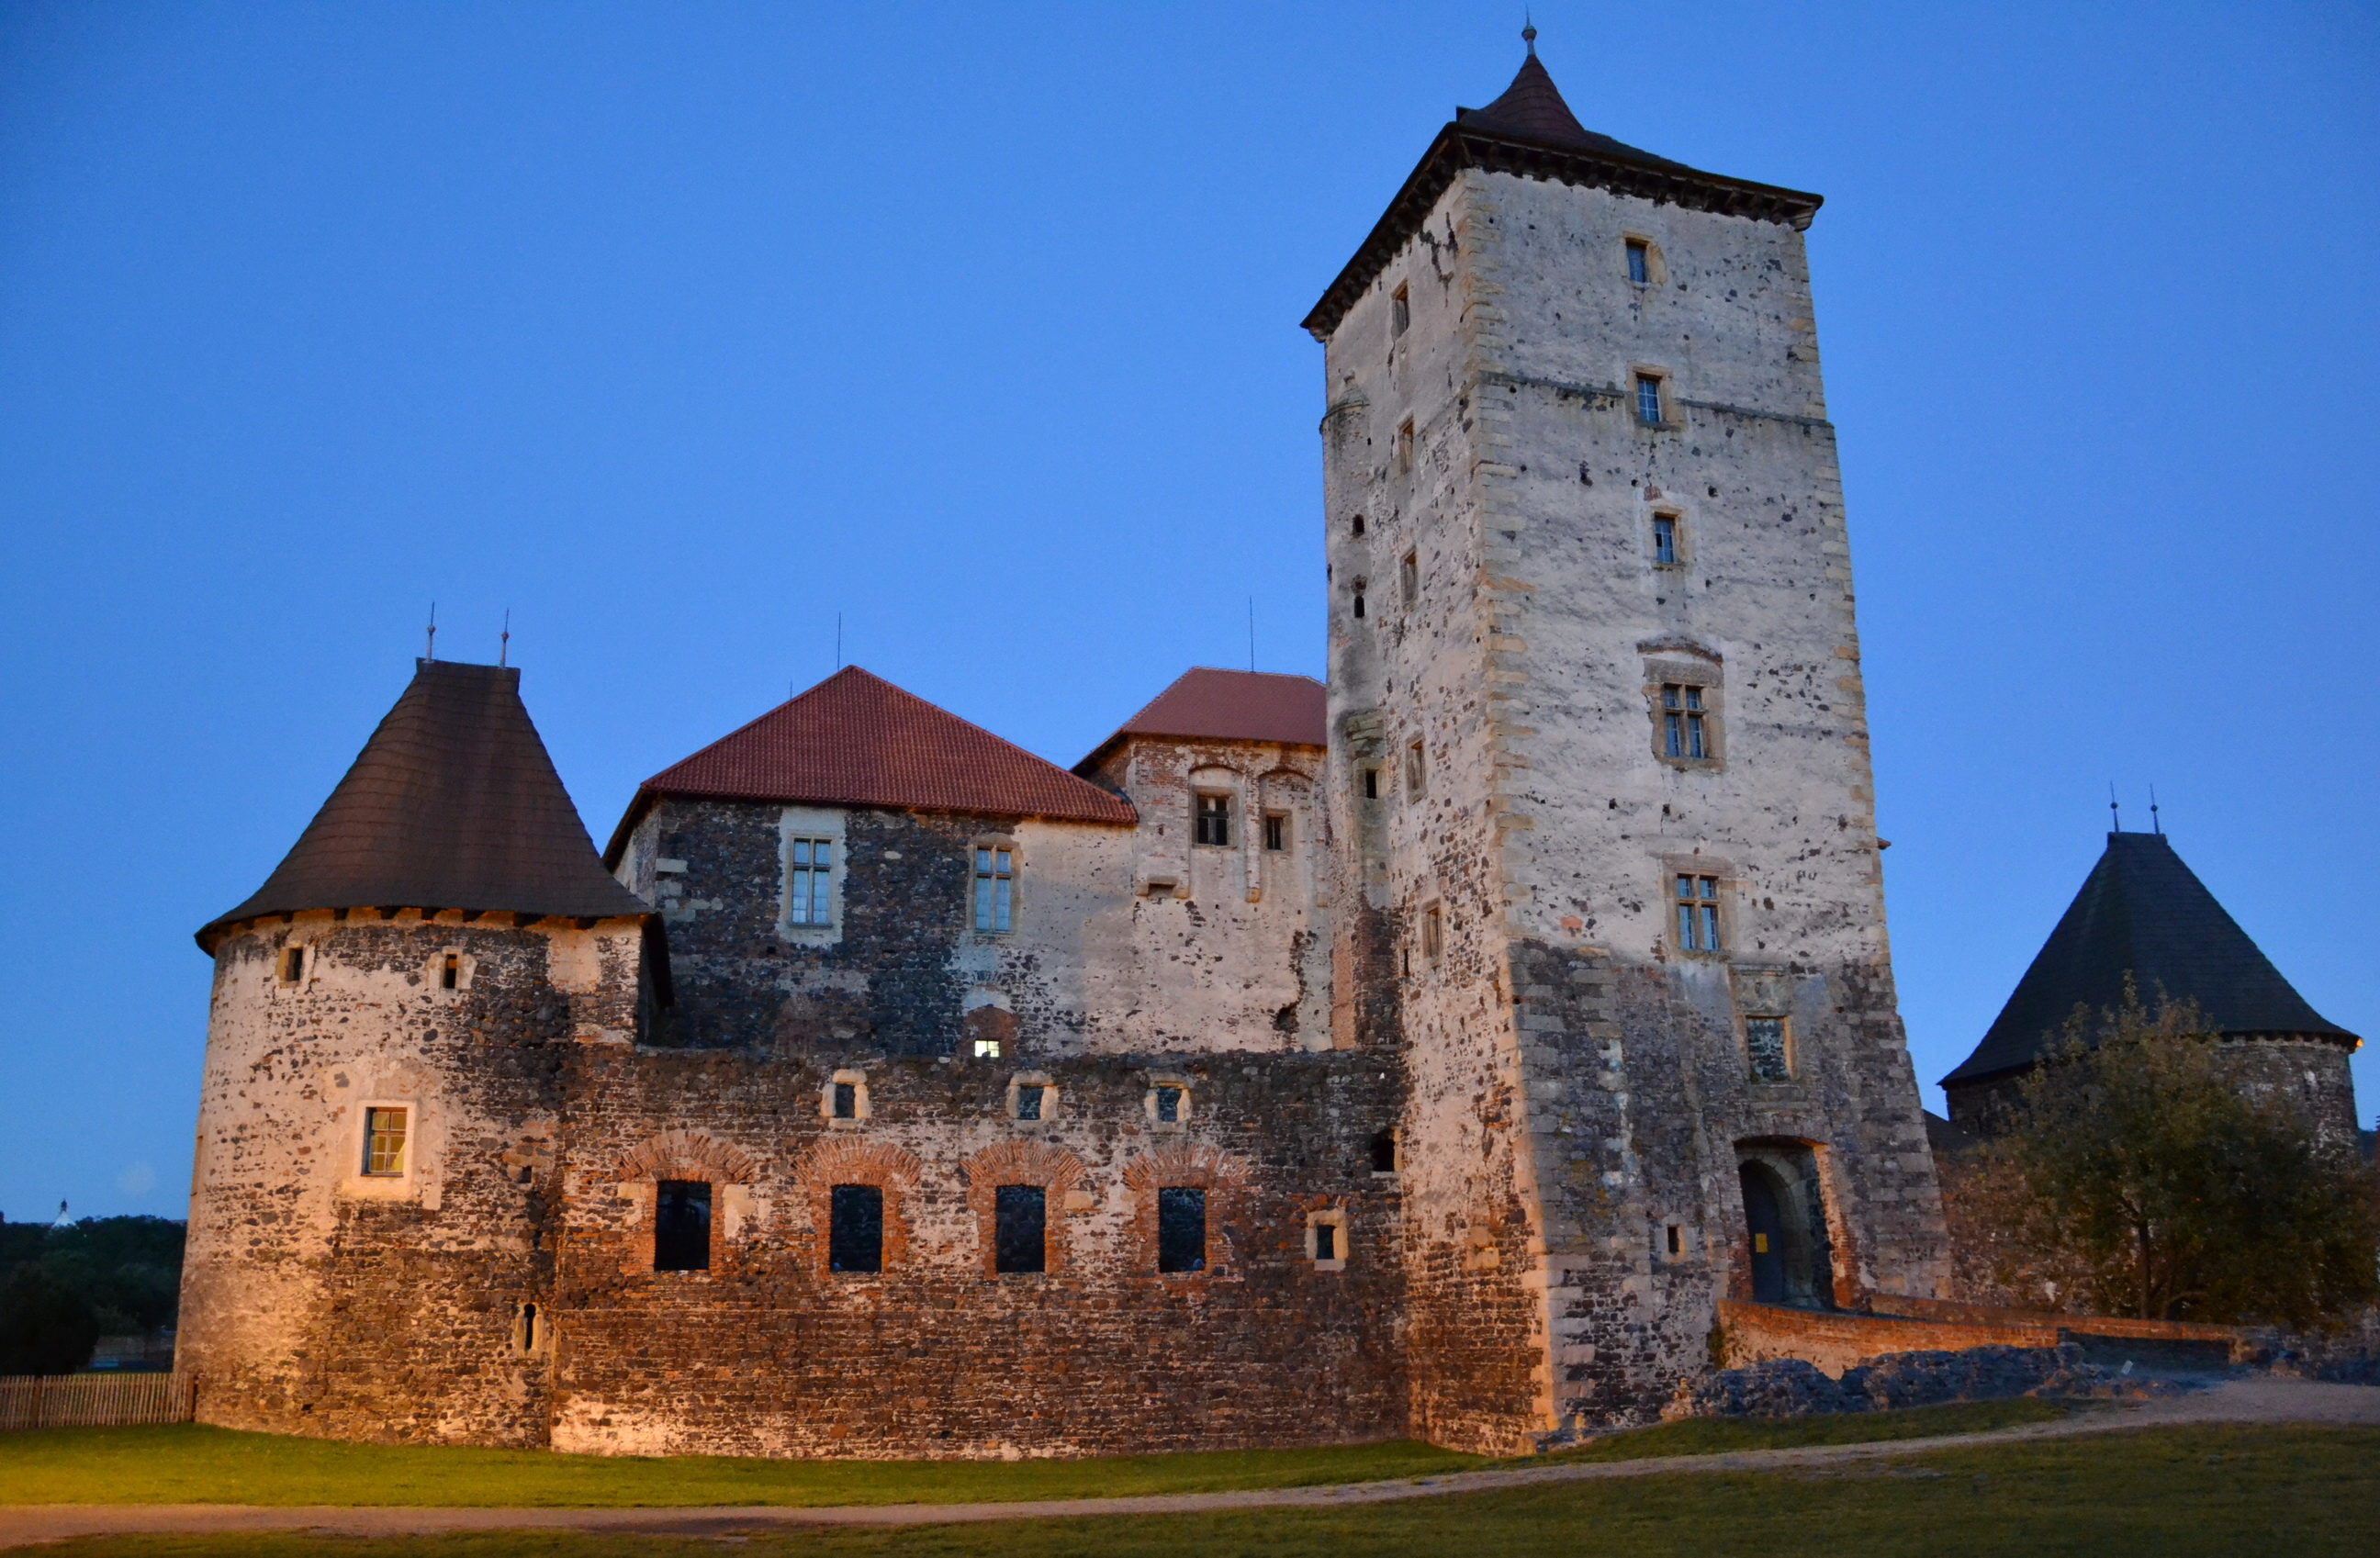 Image Czech Republic Castles Made of stone Cities castle